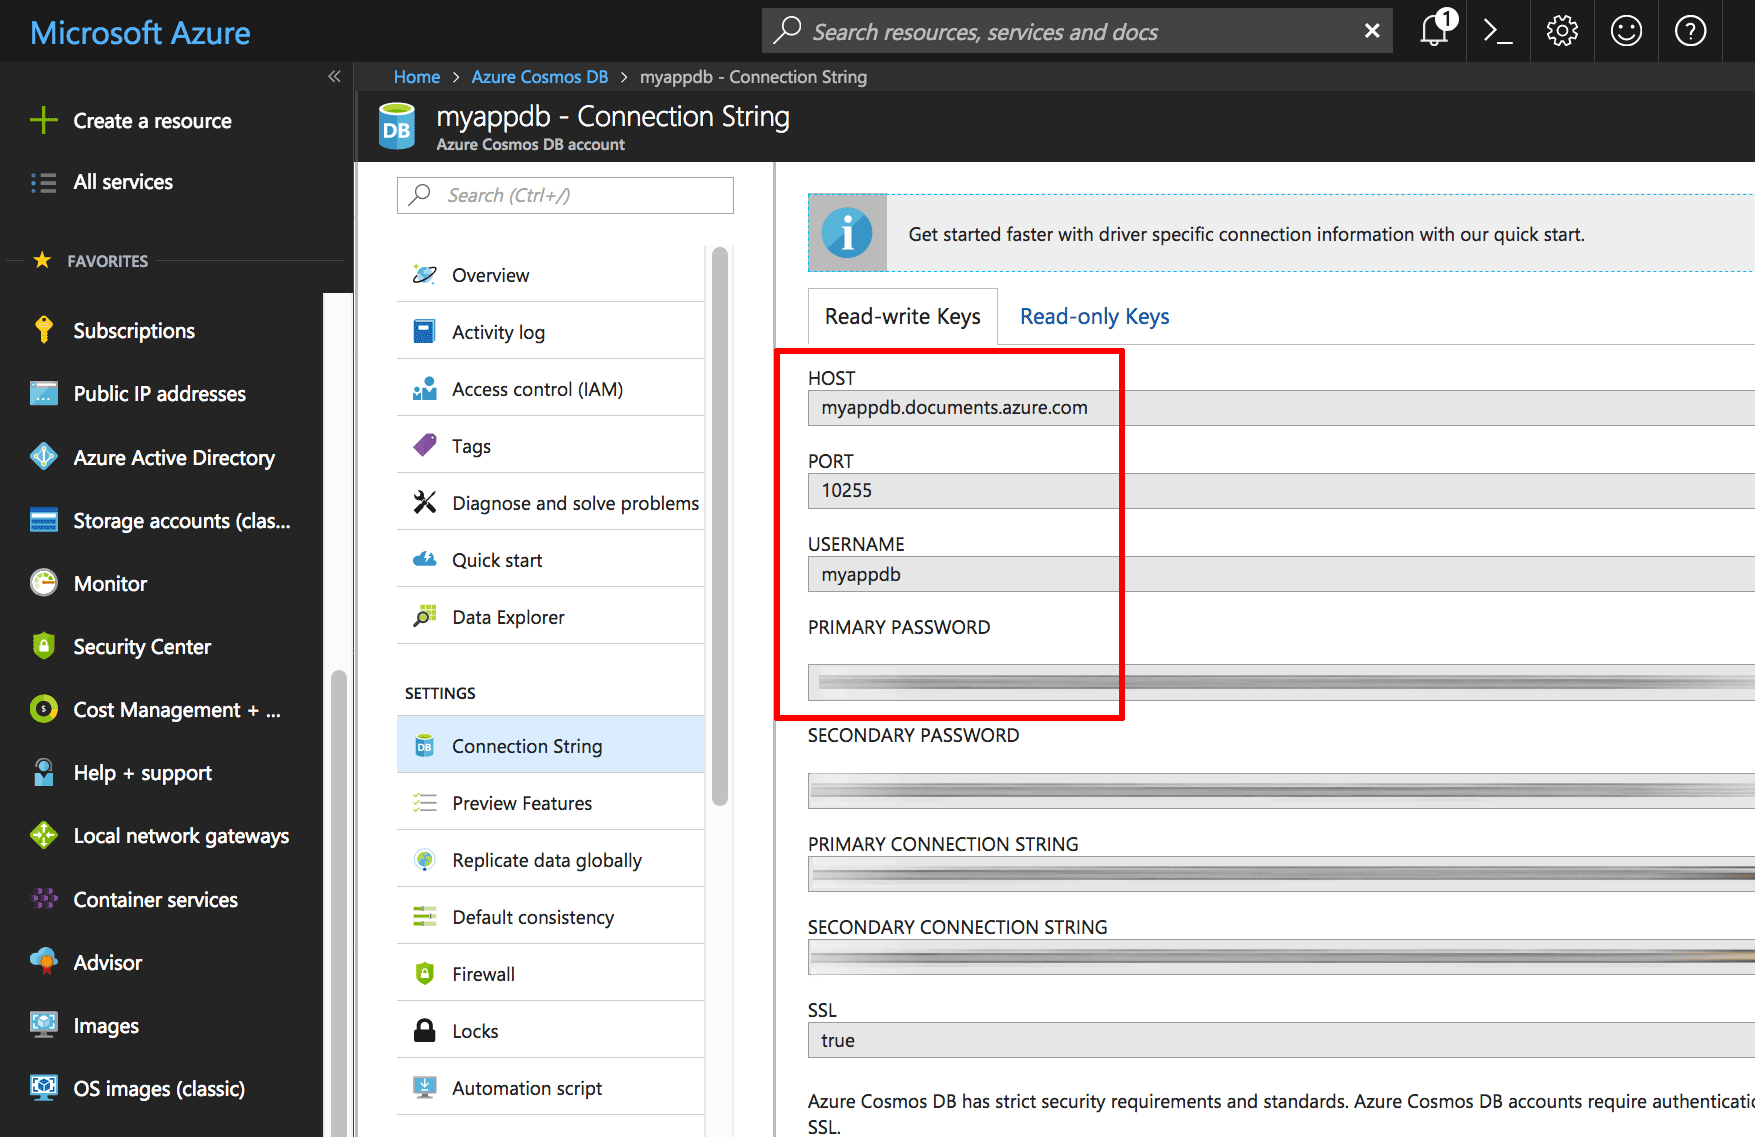 Deploy a Custom Node js Application on Microsoft Azure with High